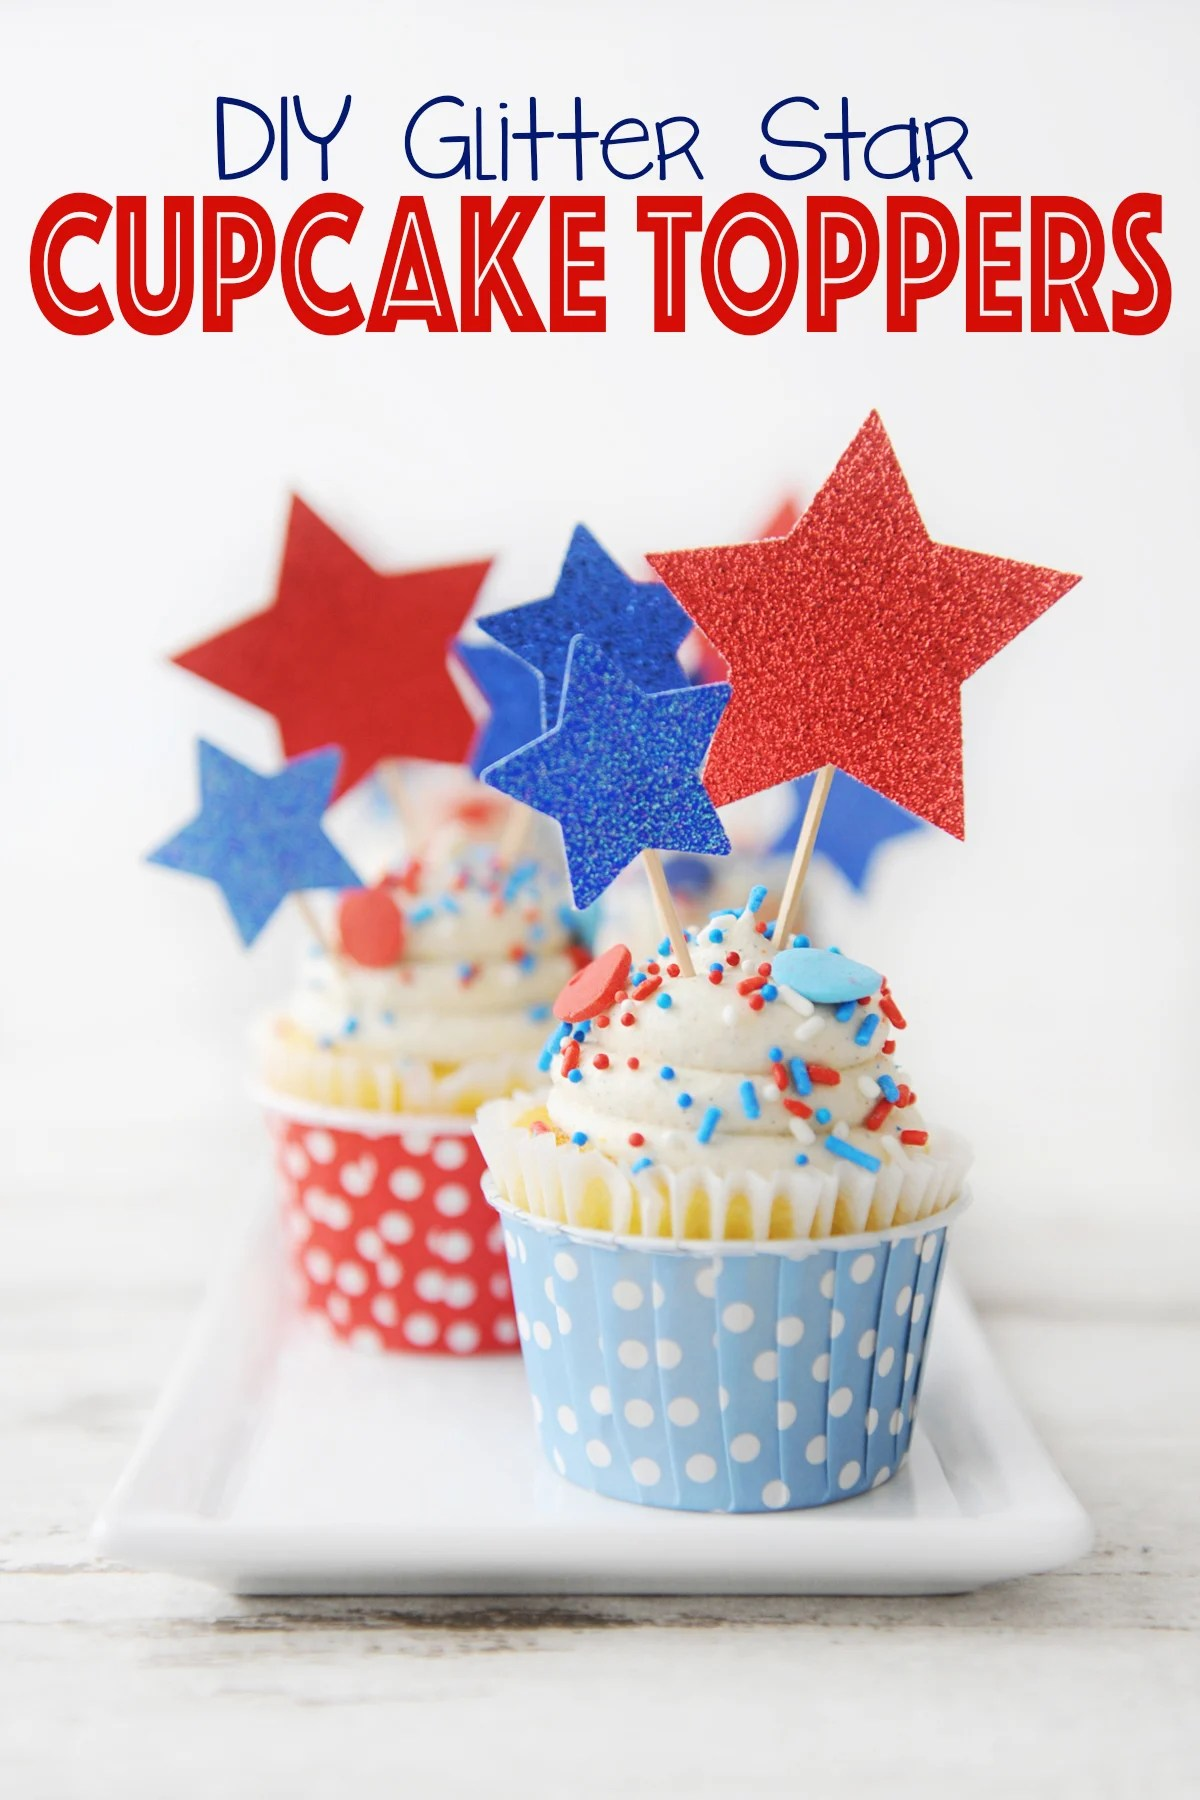 Diy cupcake toppers with toothpicks